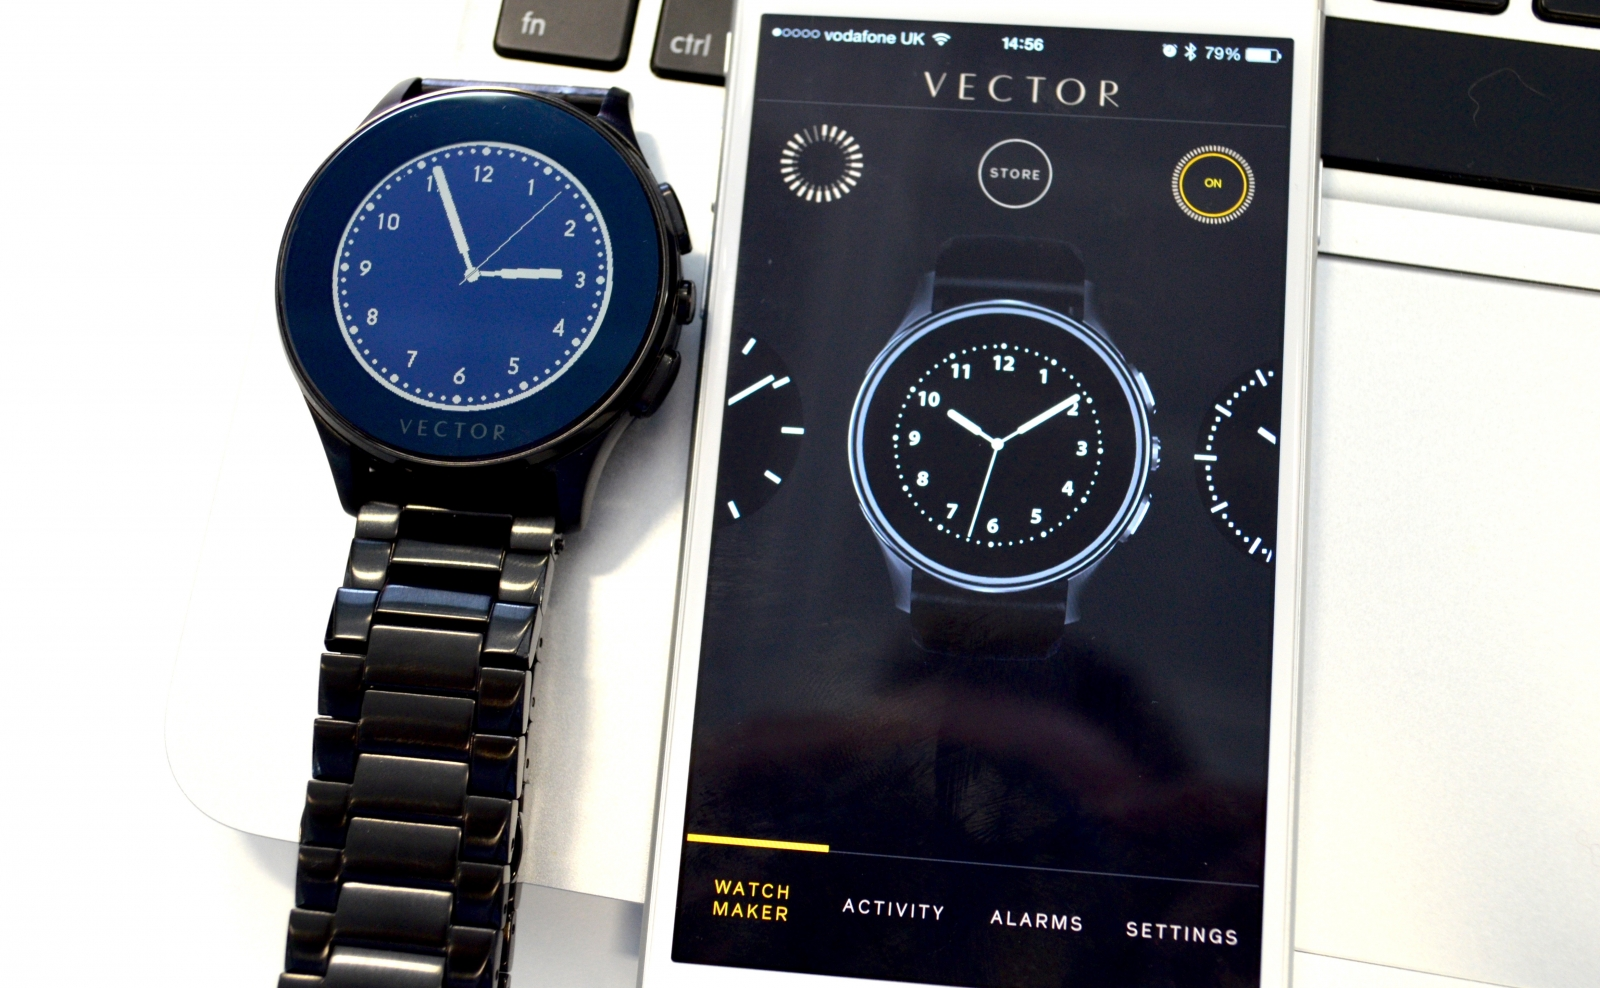 Vector Luna smartwatch app iOS iPhone